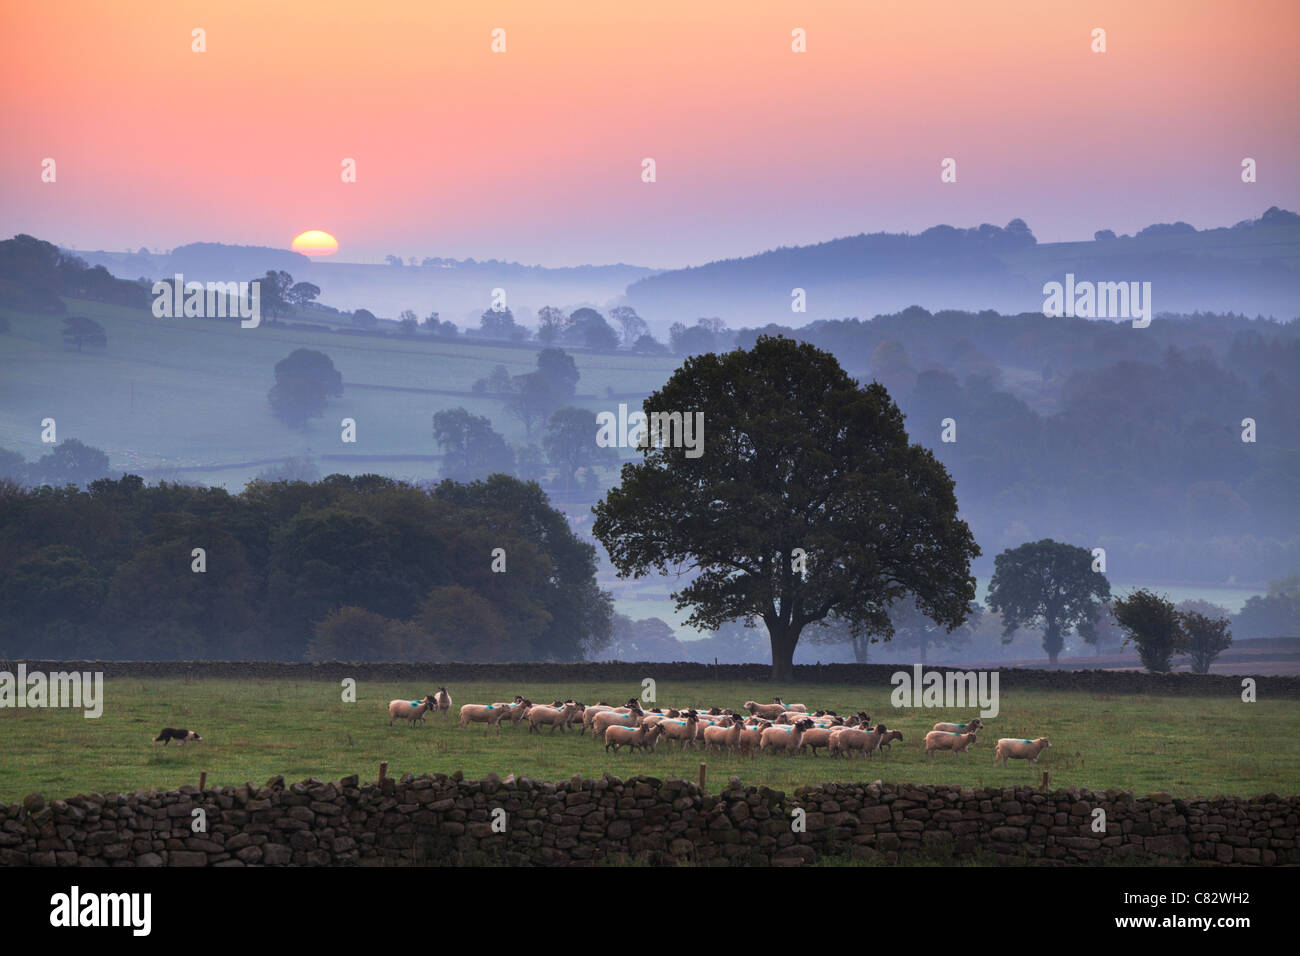 Yorkshire sheep gather ras the sun breaks over a mist shrouded Nidderdale Valley as seen from Dacre, Yorkshire, - Stock Image